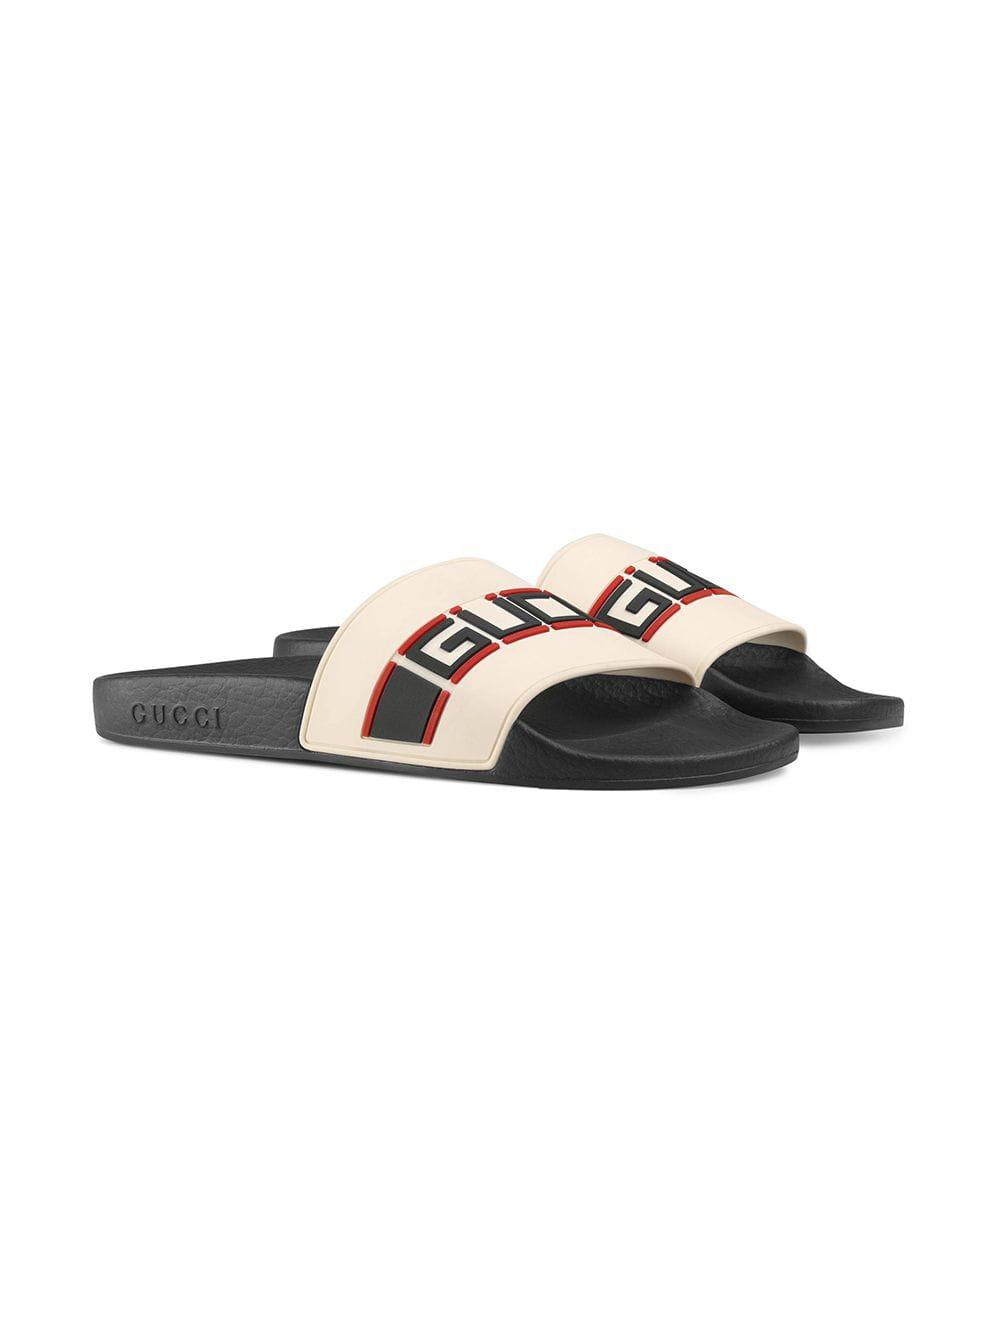 abd0104b2 Gucci Stripe Rubber Slide Sandals in White - Save 3% - Lyst